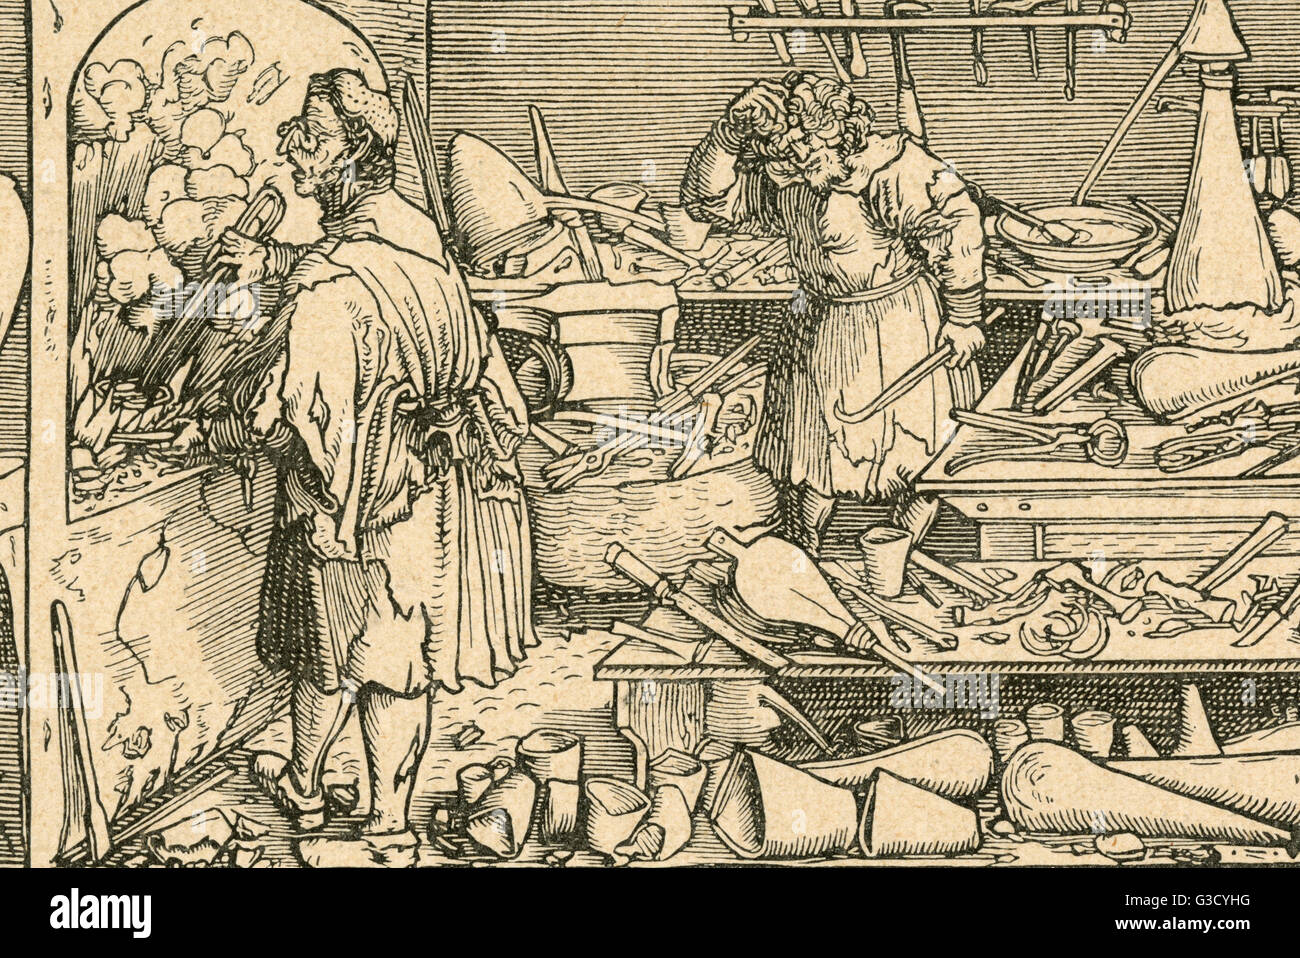 An alchemist works at his furnace while his assistant feels the heat      Date: 1537 - Stock Image